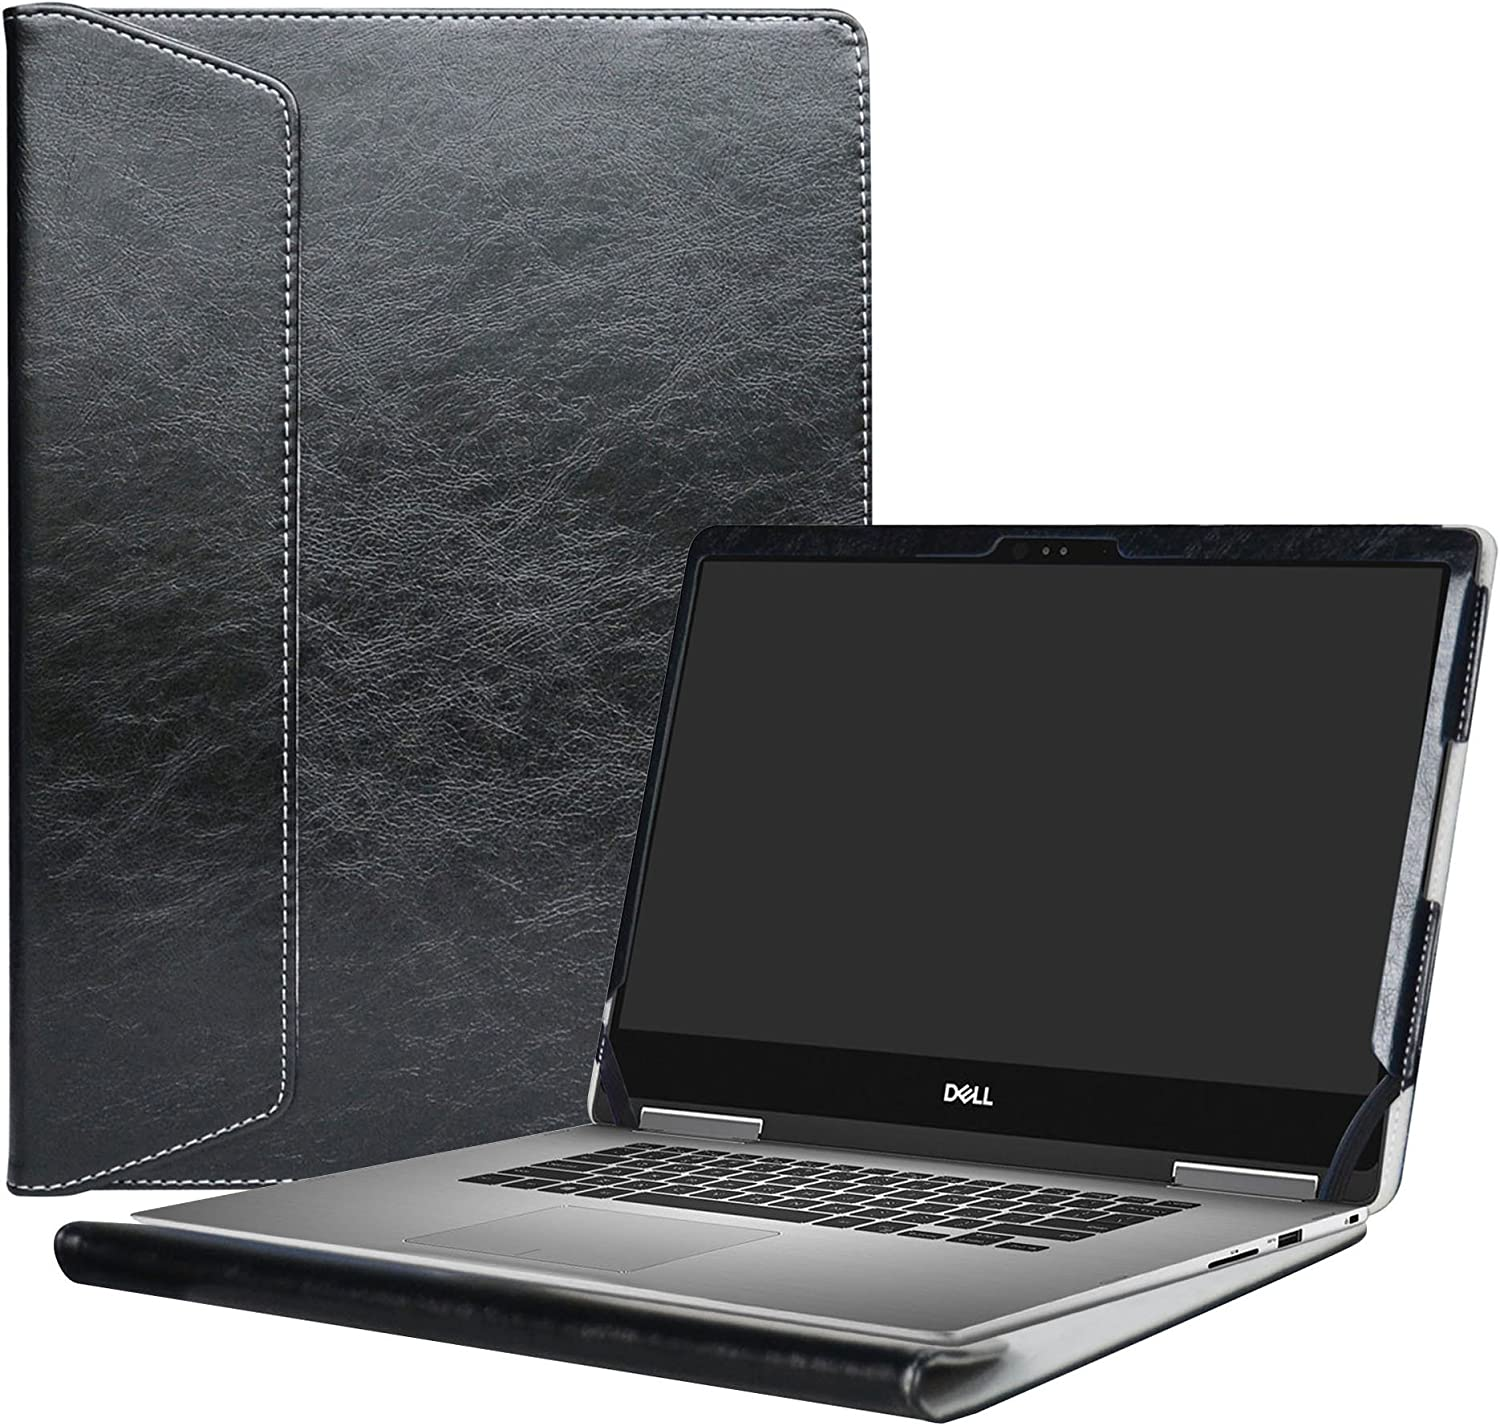 """Alapmk Protective Case Cover for 13.3"""" Dell Inspiron 13 2-in-1 7373 i7373 / Inspiron 13 7370 i7370 Laptop(Warning:only fit Model 7373 7370),Black"""